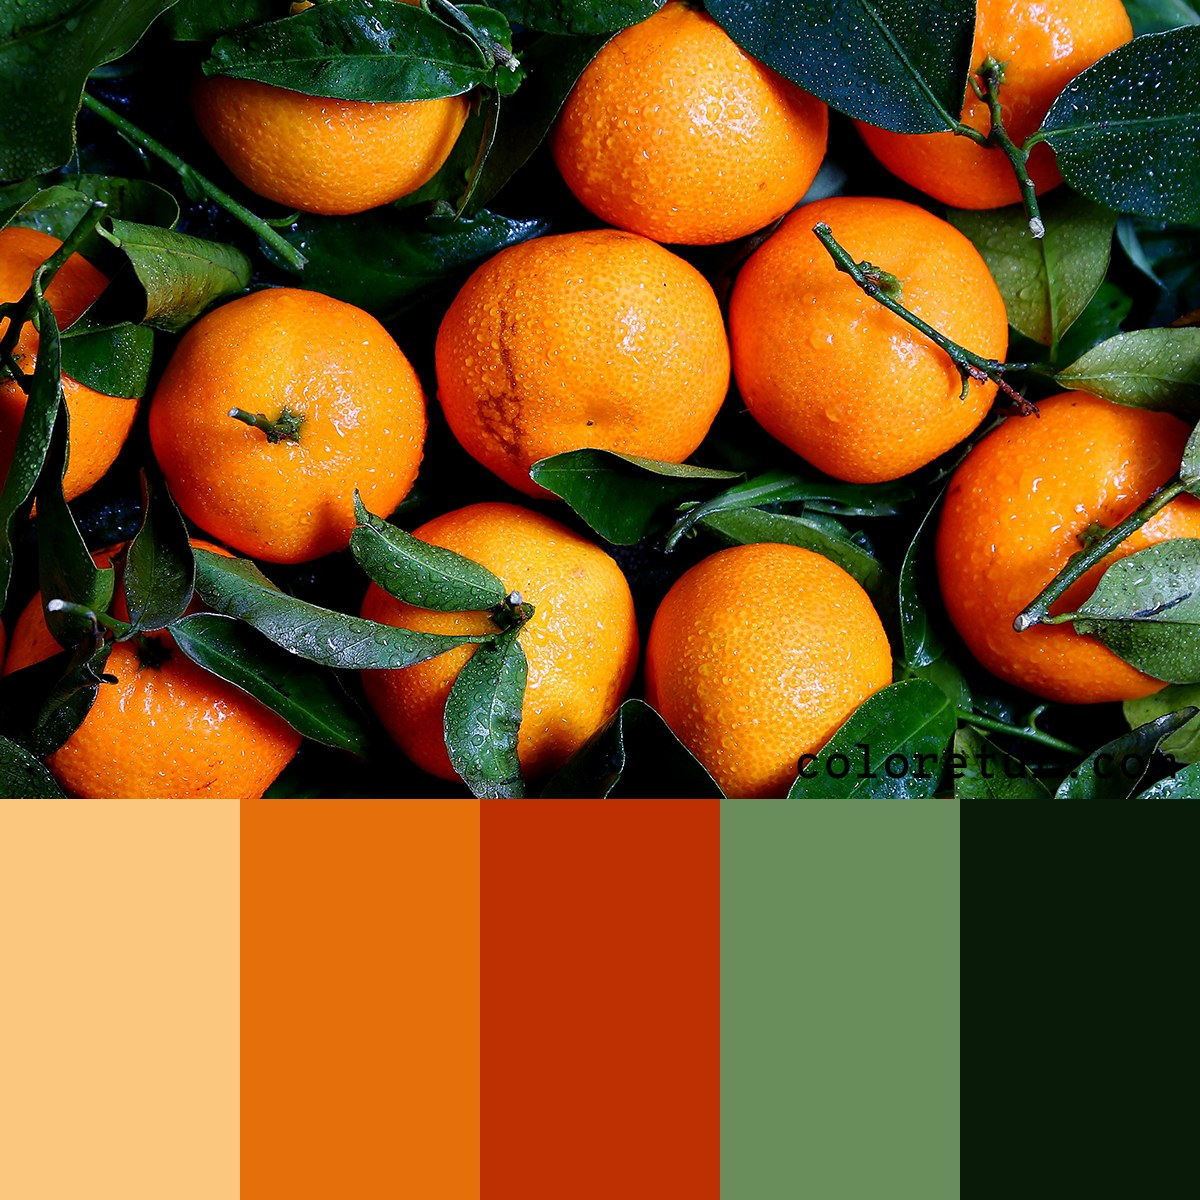 Color swatches from a bunch of oranges